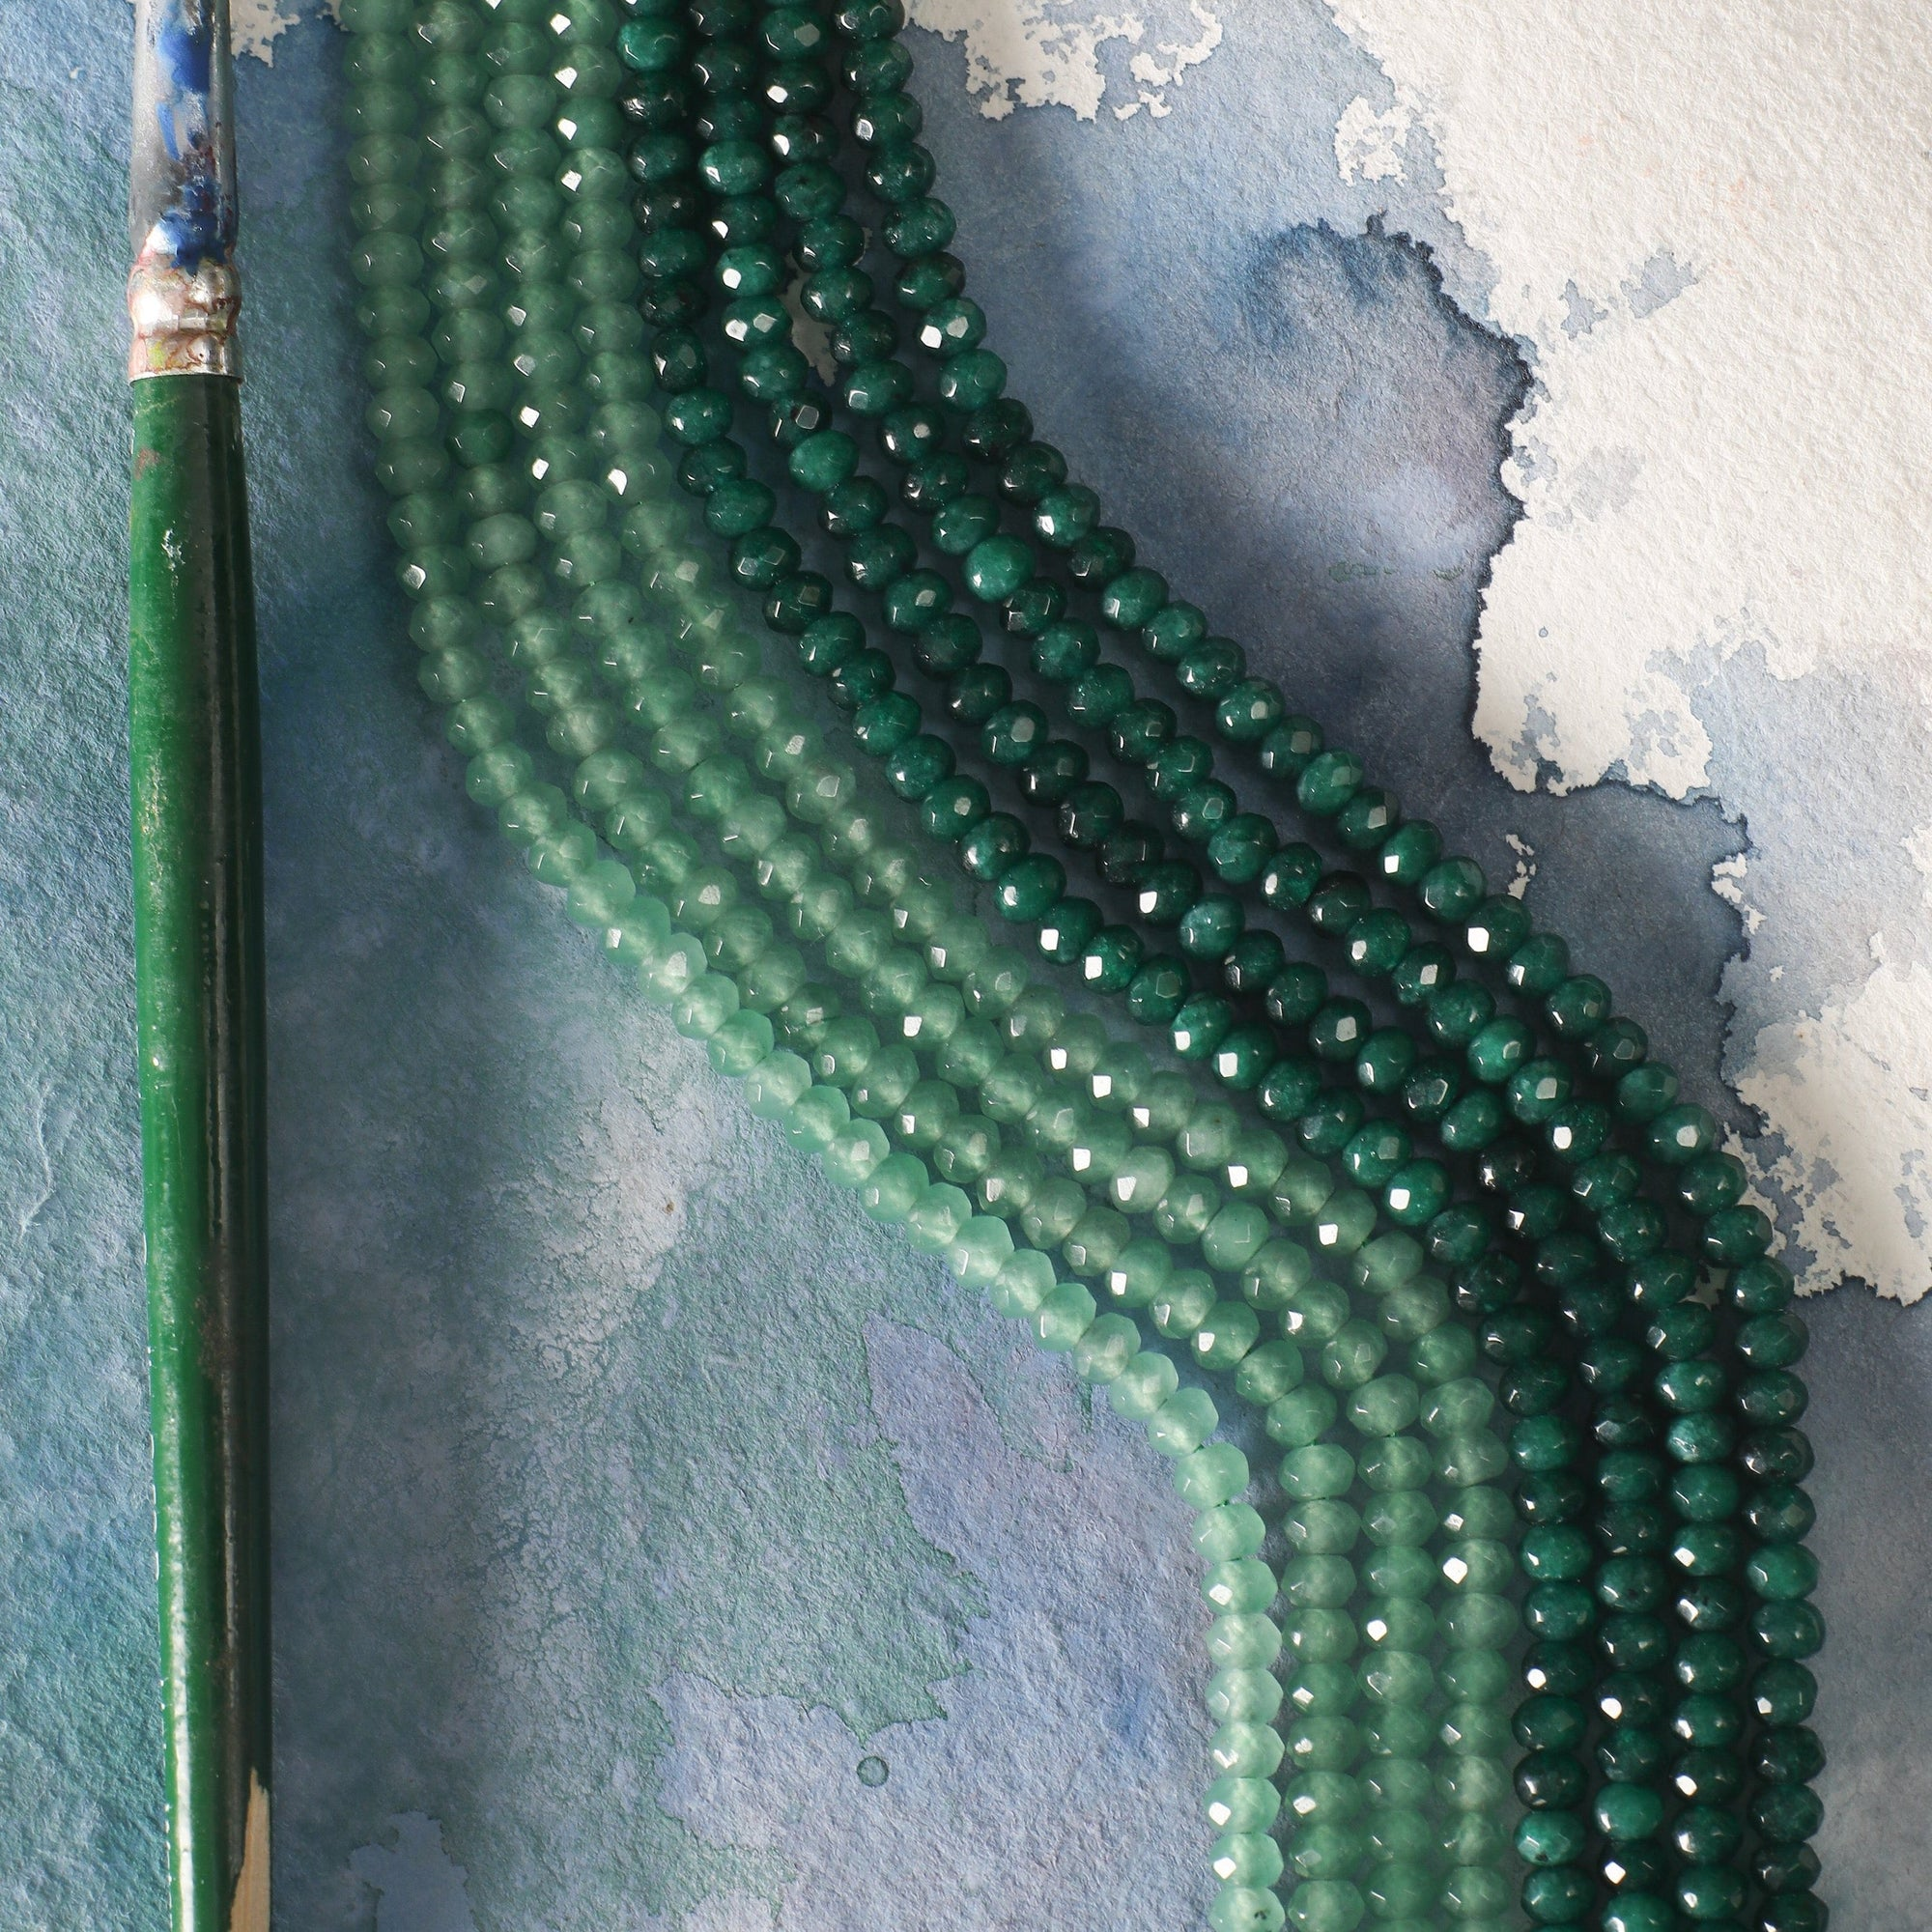 Dark Green opaque Jade Quartz Dyde Button Beads 2/4mm